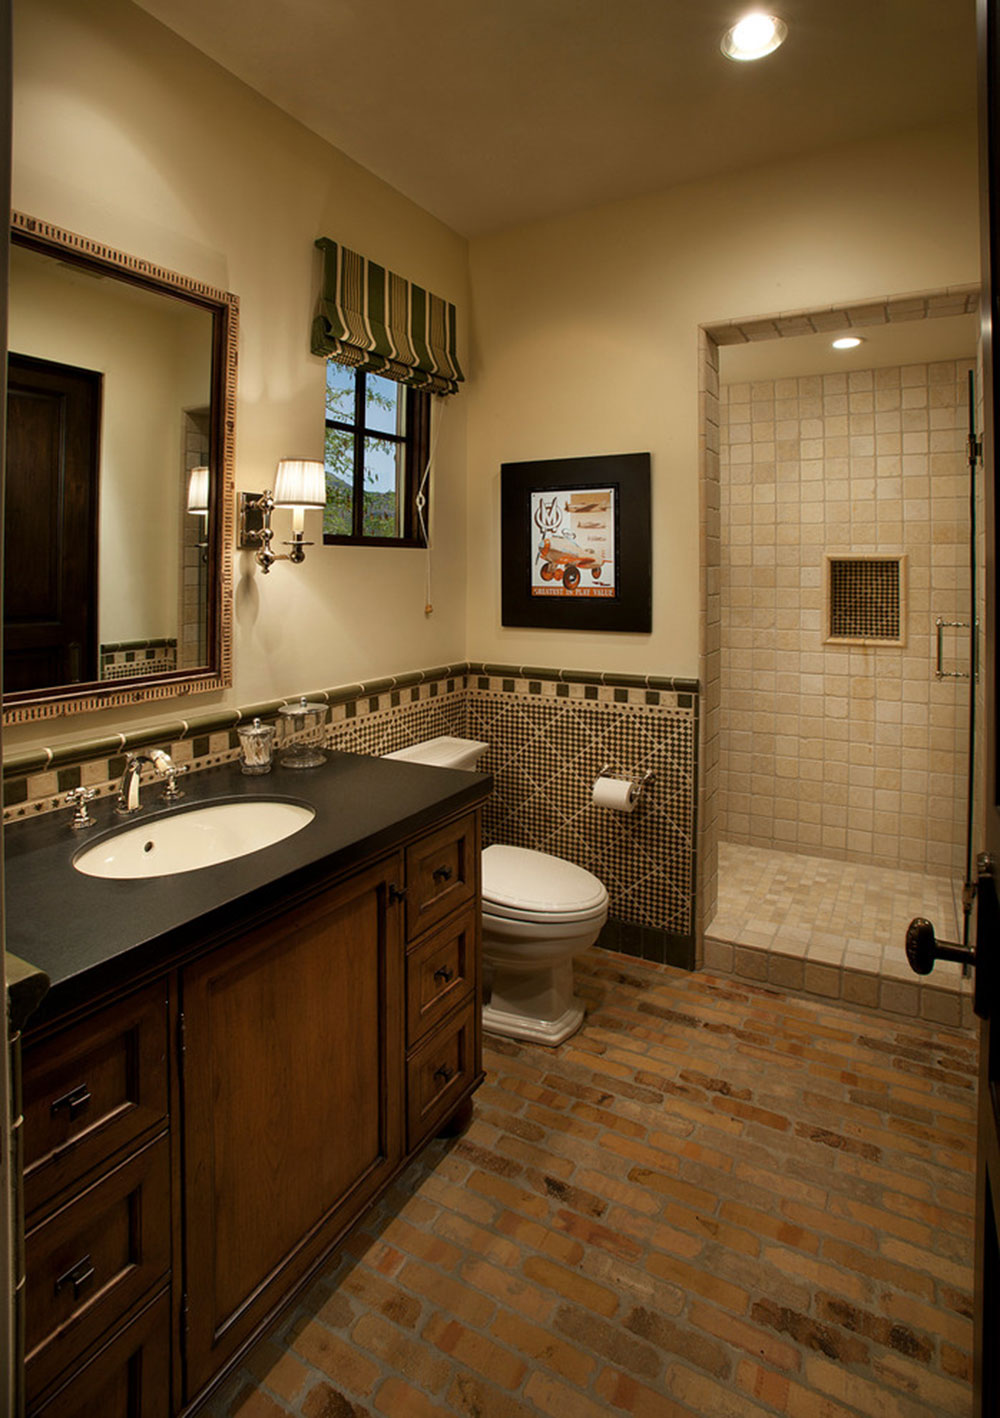 The stylish bathroom should be a priority9 The stylish bathroom should be a priority